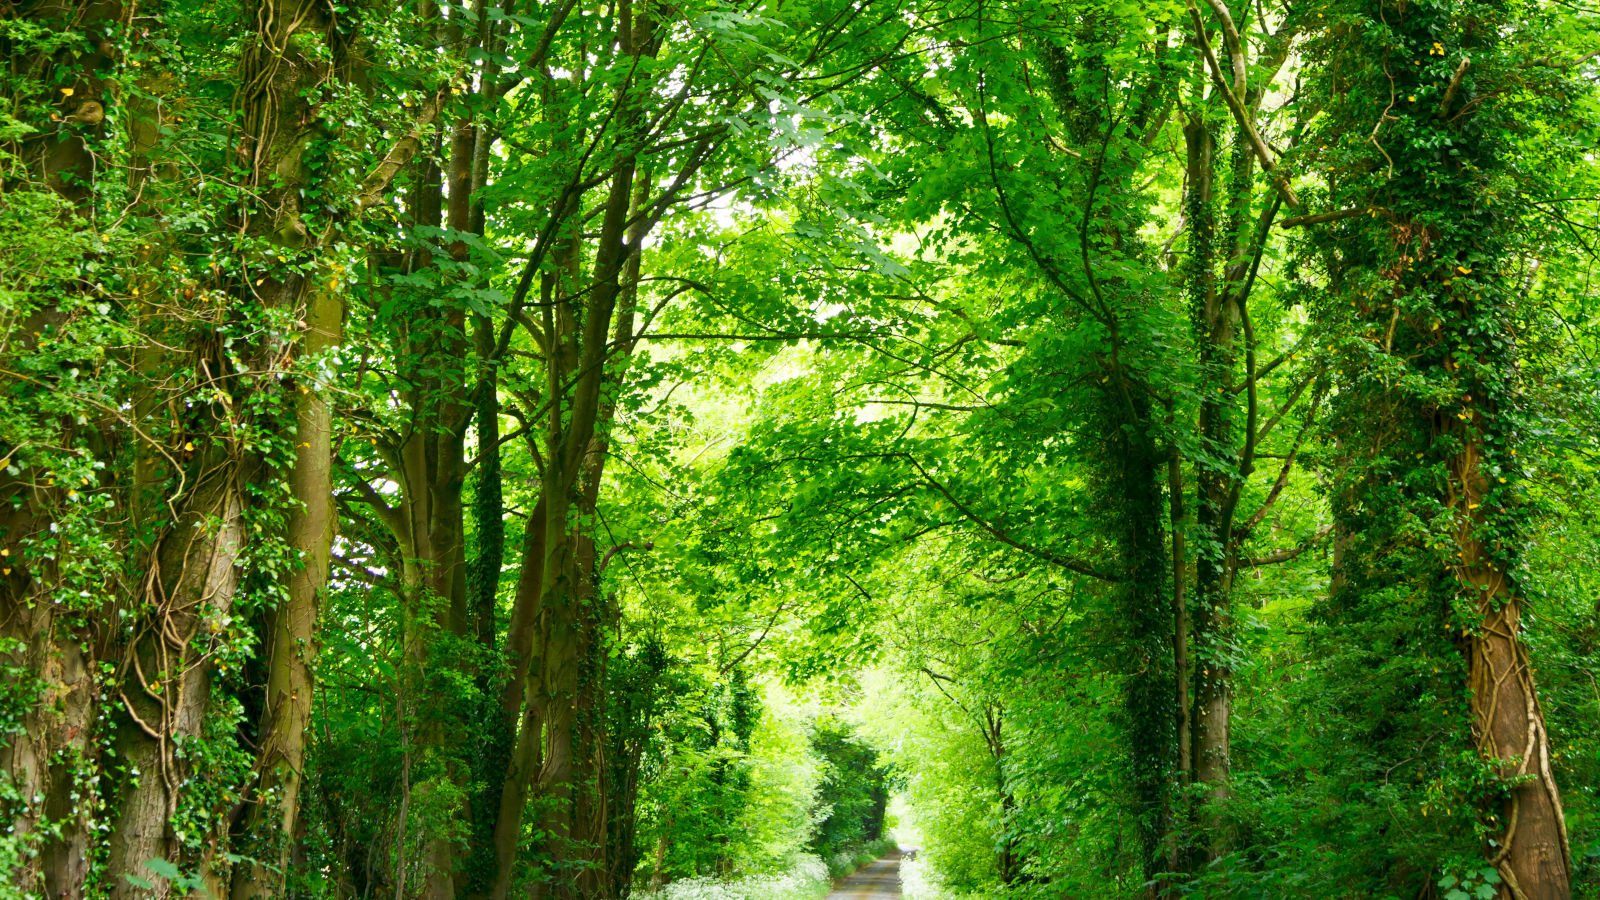 Green trees in a woodland